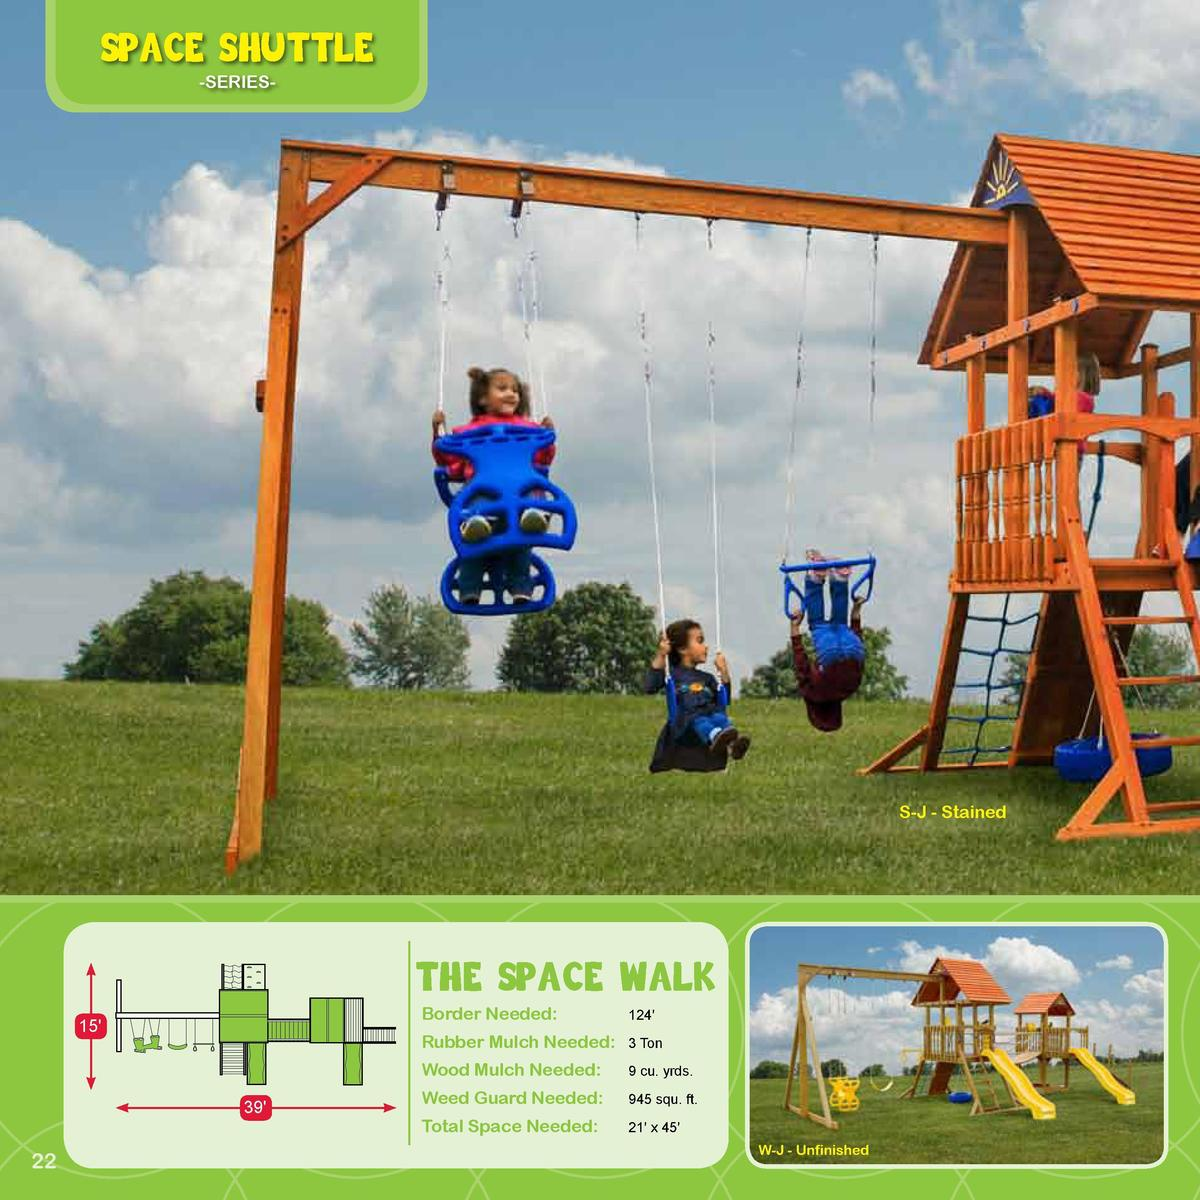 Space Shuttle  Play Deck Roofing Choices  -SERIES-  Fabric  Plastic  Clap Board  Did You Know  Kids do better on tests whe...